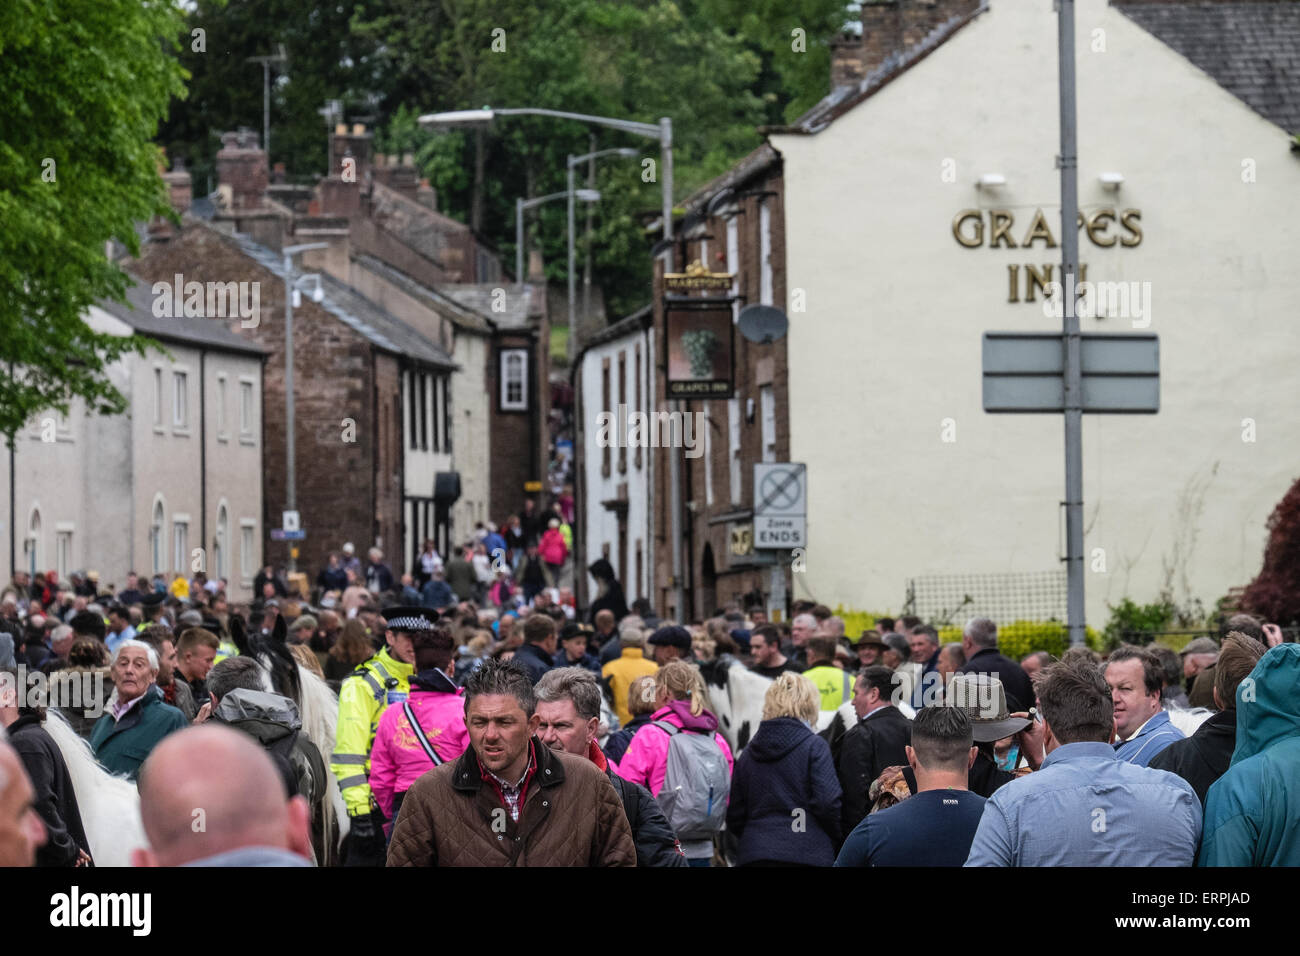 Appleby in Westmorland, Cumbria UK. 6th June 2015. Members of the UK's gypsy and traveller communities converge Stock Photo